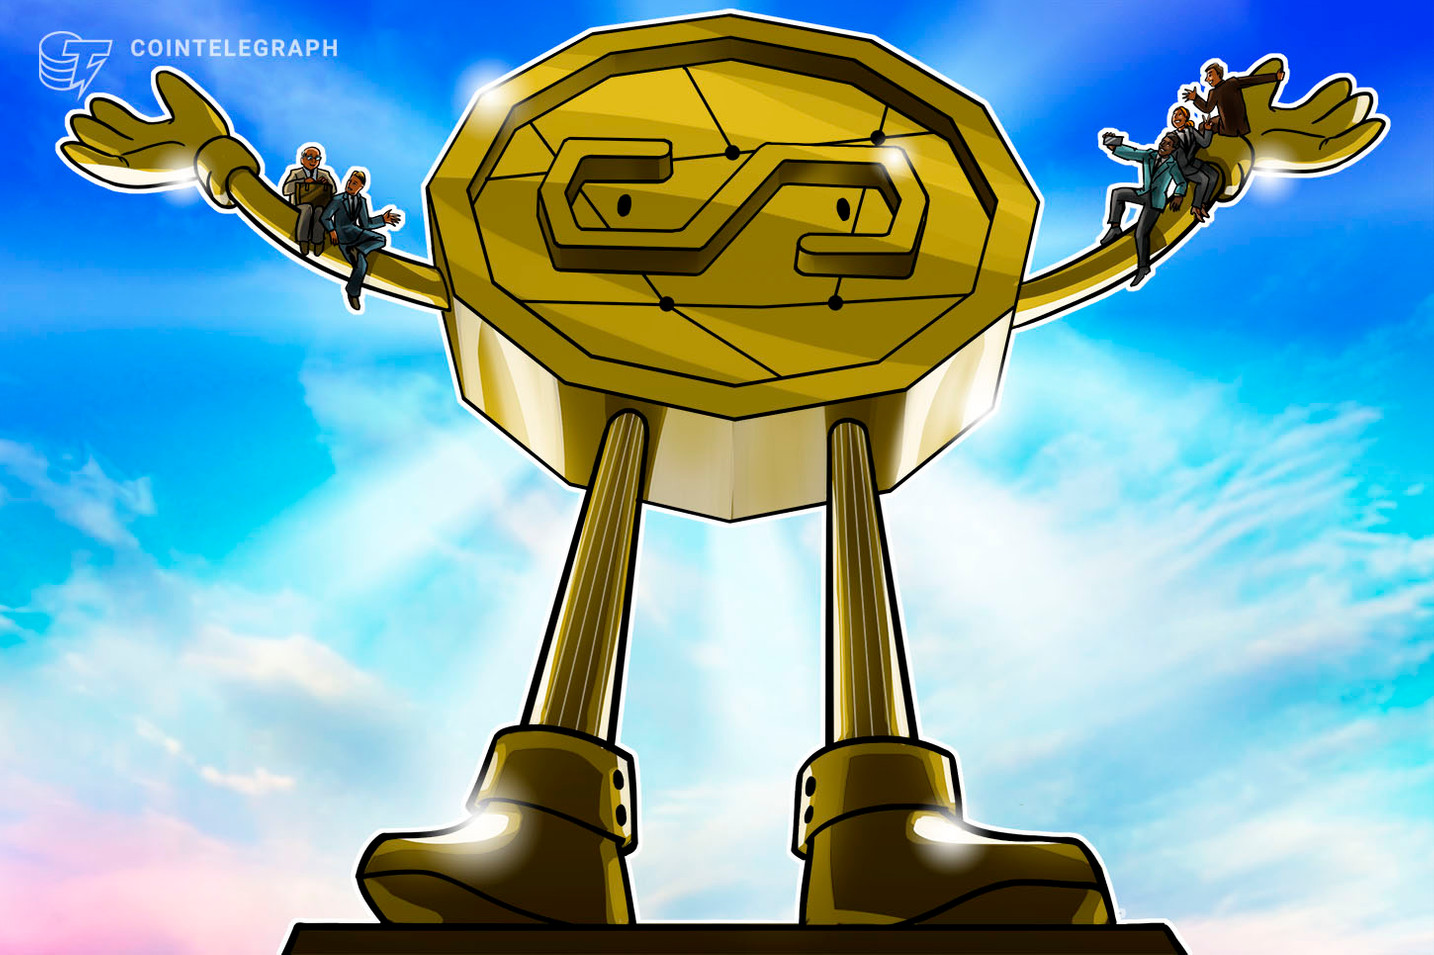 Stablecoins post triple-digit growth in 2020, but institutional rivals loom